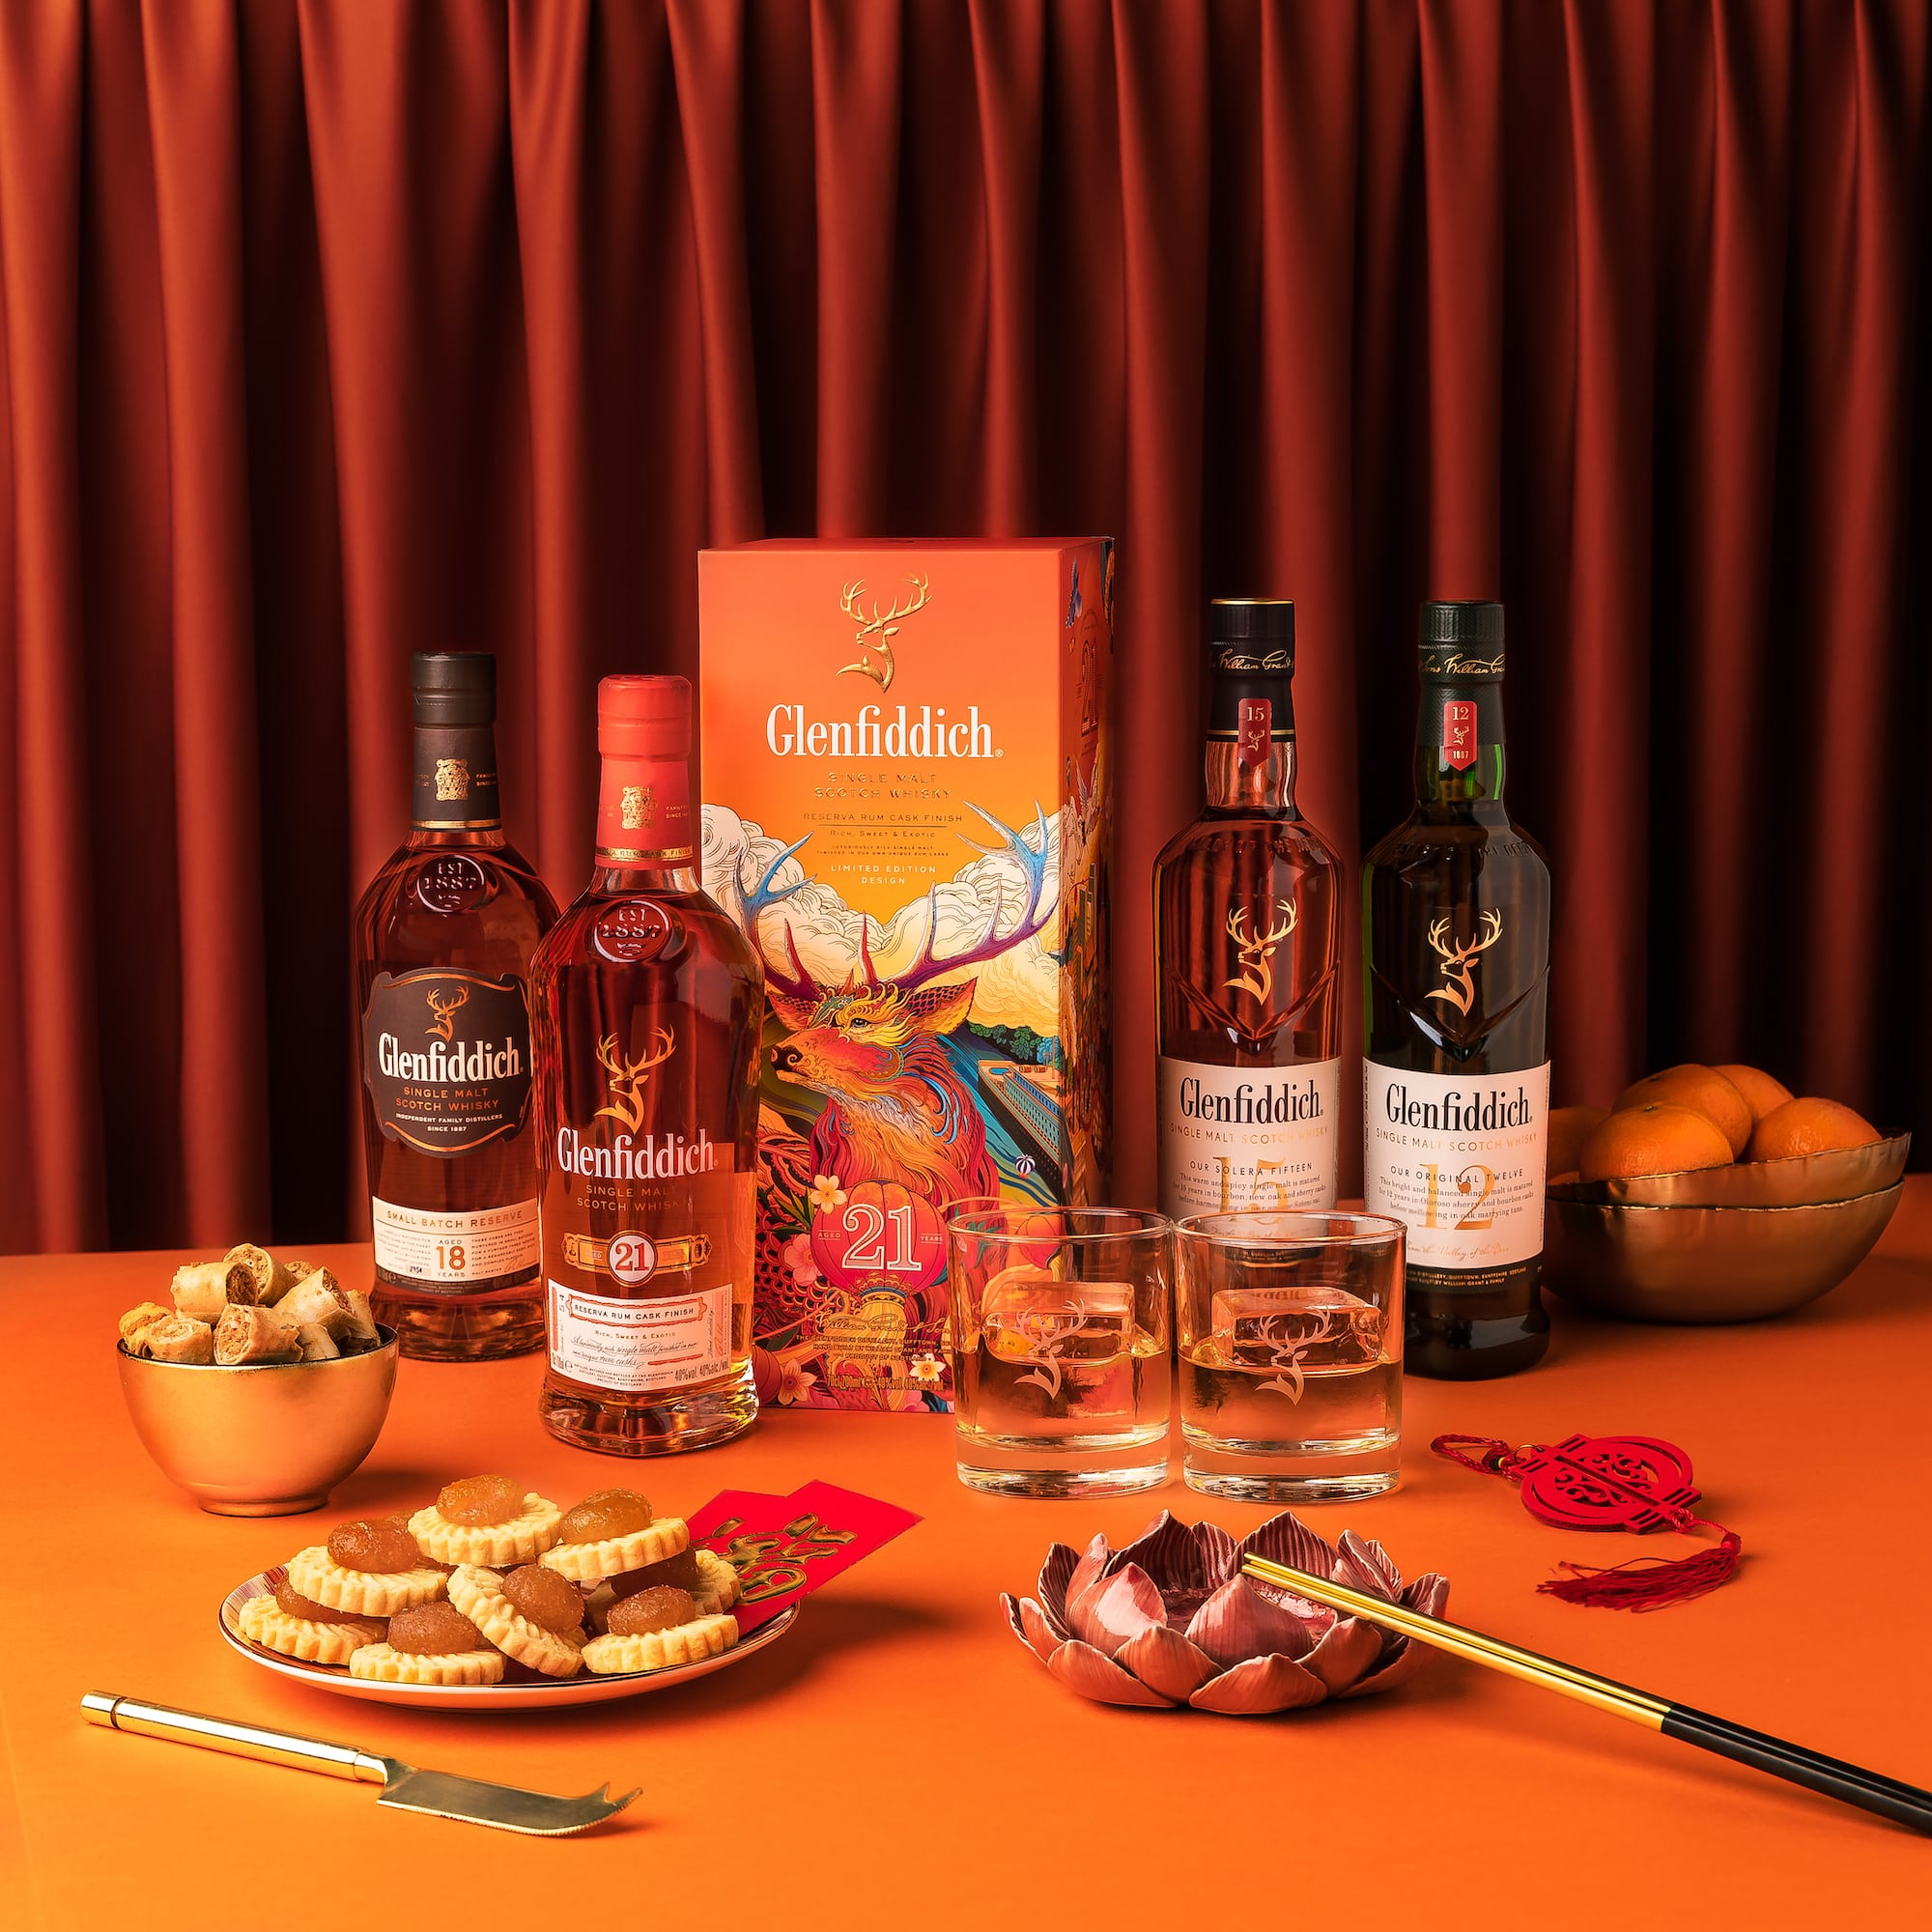 Glenfiddich's Special-edition Whisky Box Is The Hamper You Want To Have And Gift This Cny photo